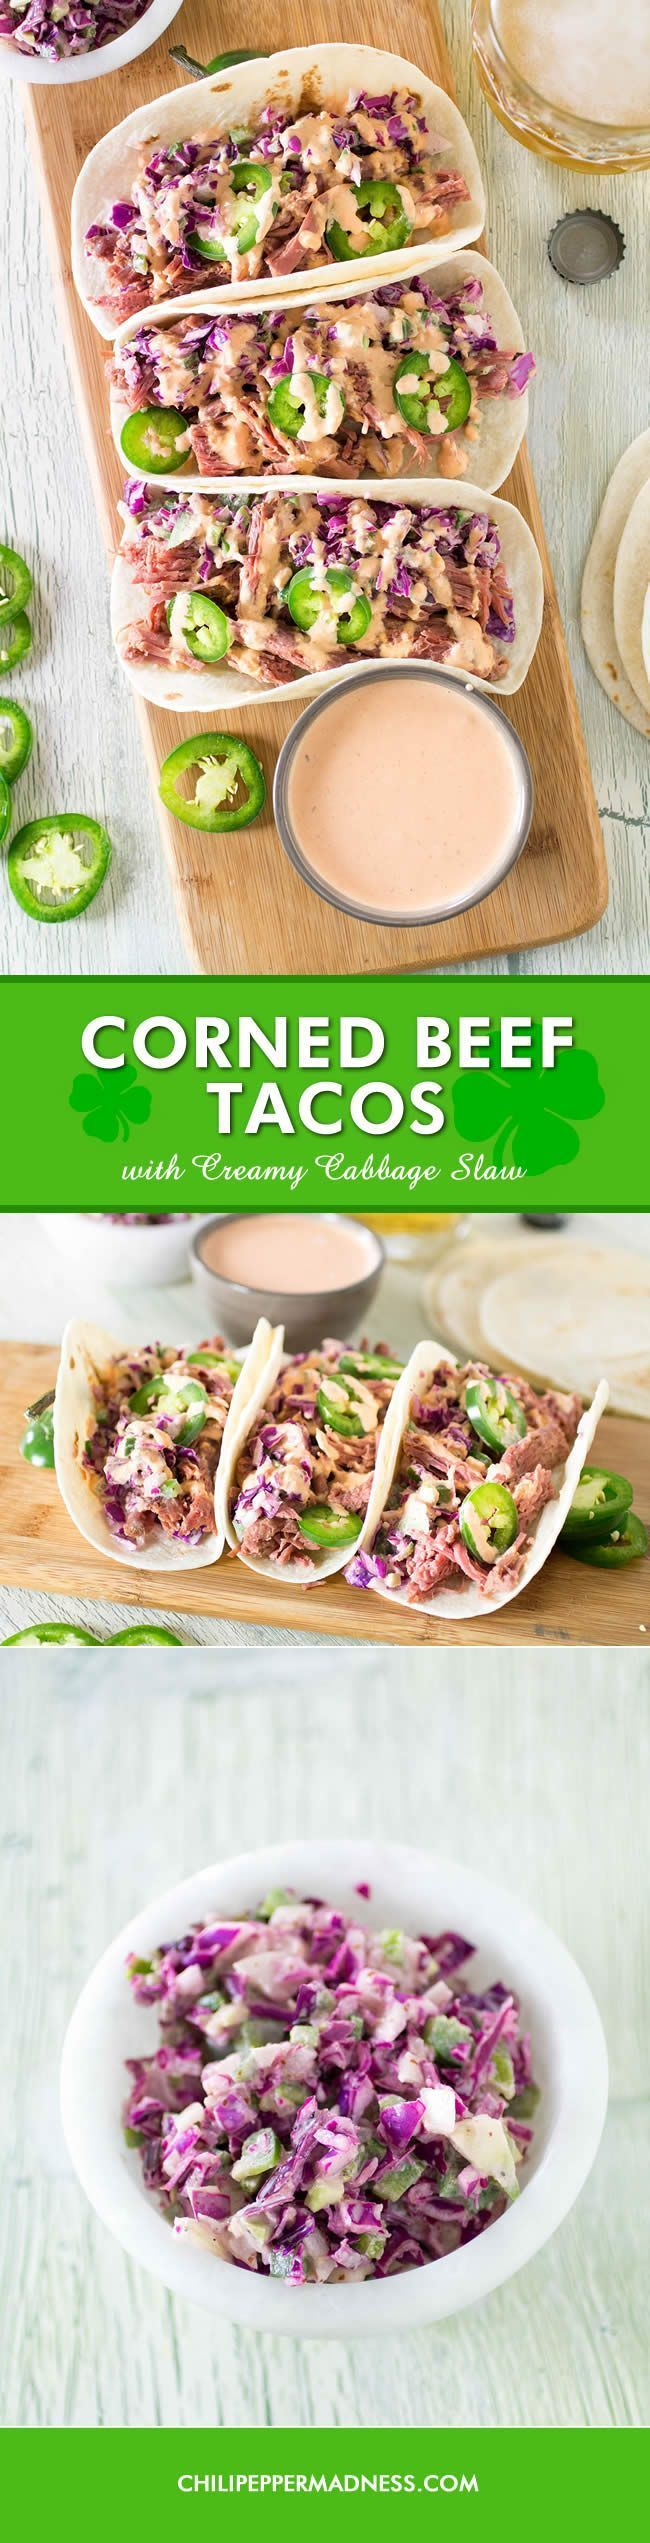 Corned Beef Tacos with Creamy Cabbage Slaw - Celebrate the Irish way with this recipe for shredded corned beef served on warmed flour tortillas, topped with a creamy cabbage-jalapeno slaw and homemade thousand island dressing. #cornedbeef #tacos #tacotuesday #thousandisland #jalapeno #slaw #recipe #cabbage